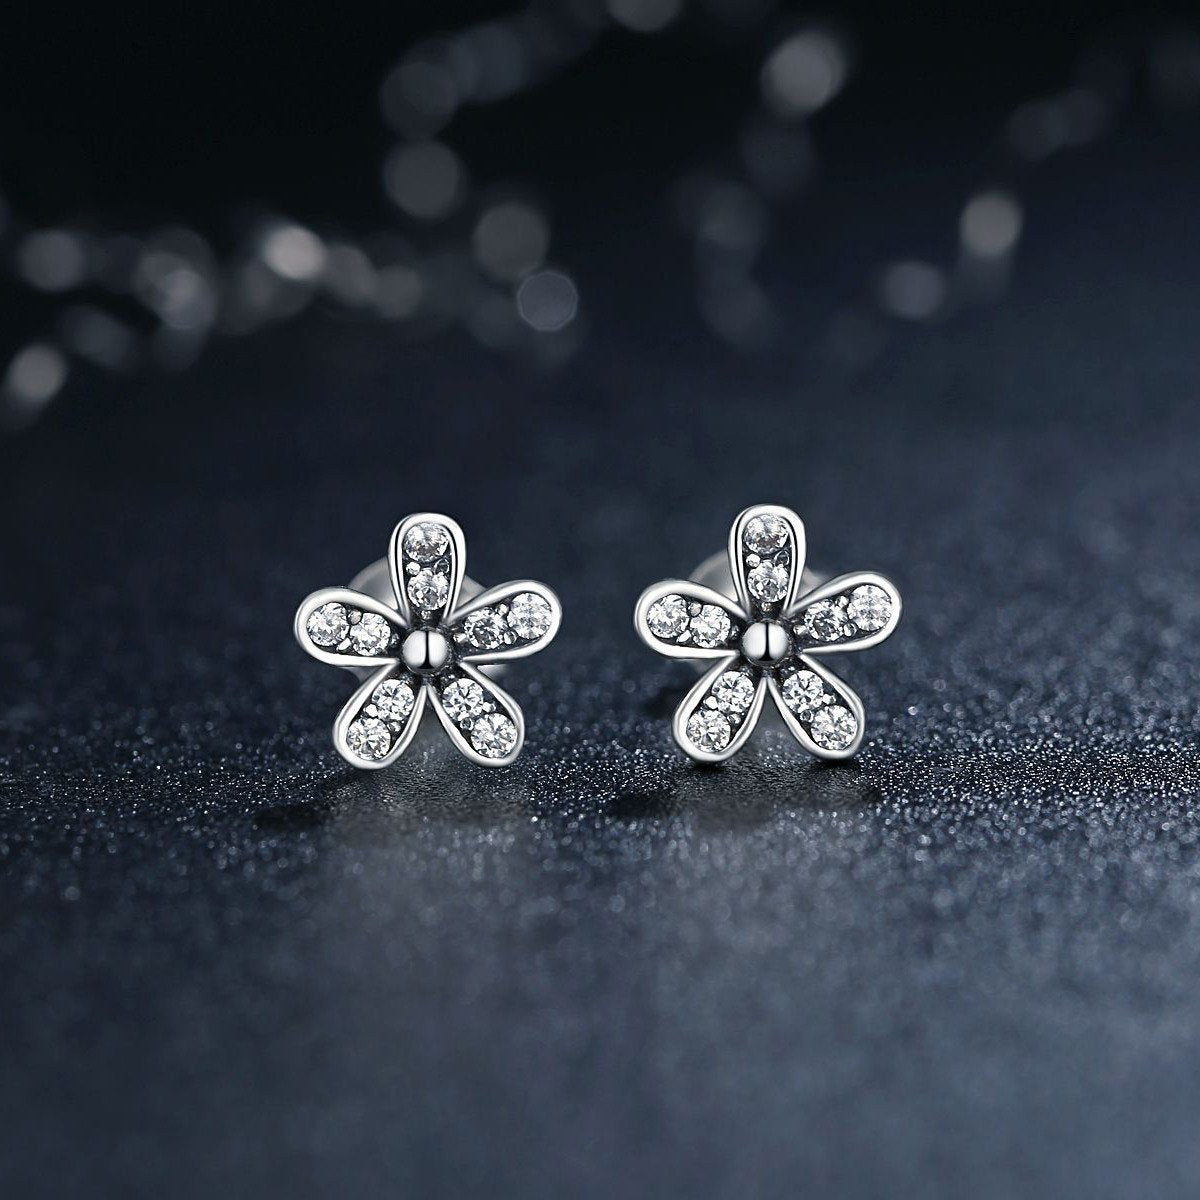 5ba46a988d318 BAMOER 925 Sterling Silver Dazzling Daisy Stud Earrings with Cubic ...